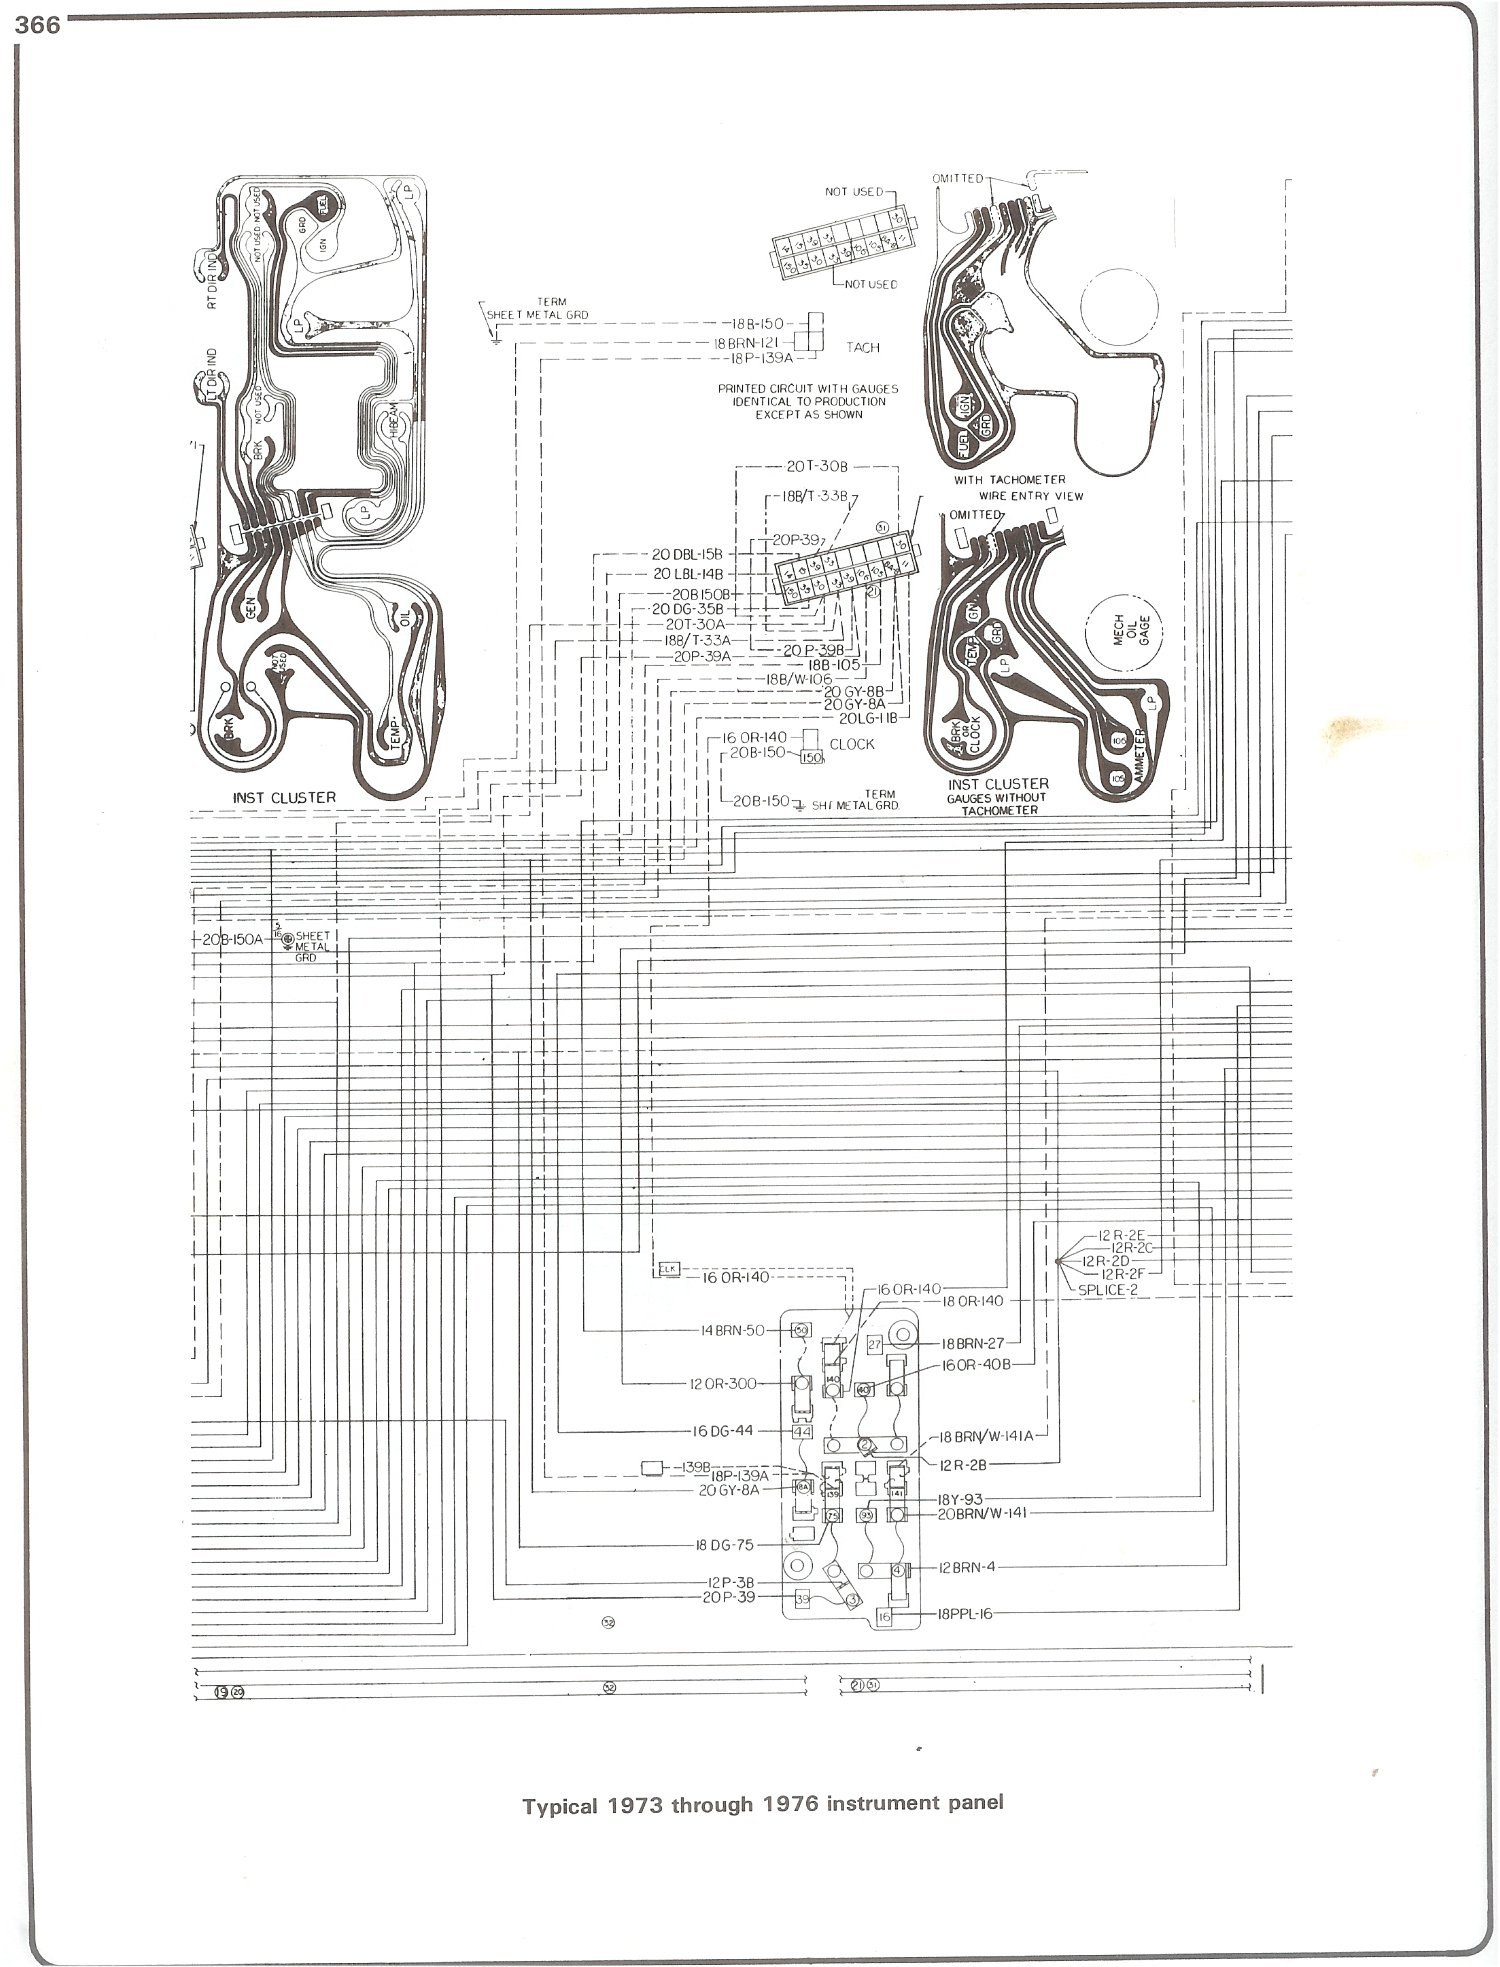 96 Pat Engine Diagram Engine Anatomy Wiring Diagram ~ ODICIS